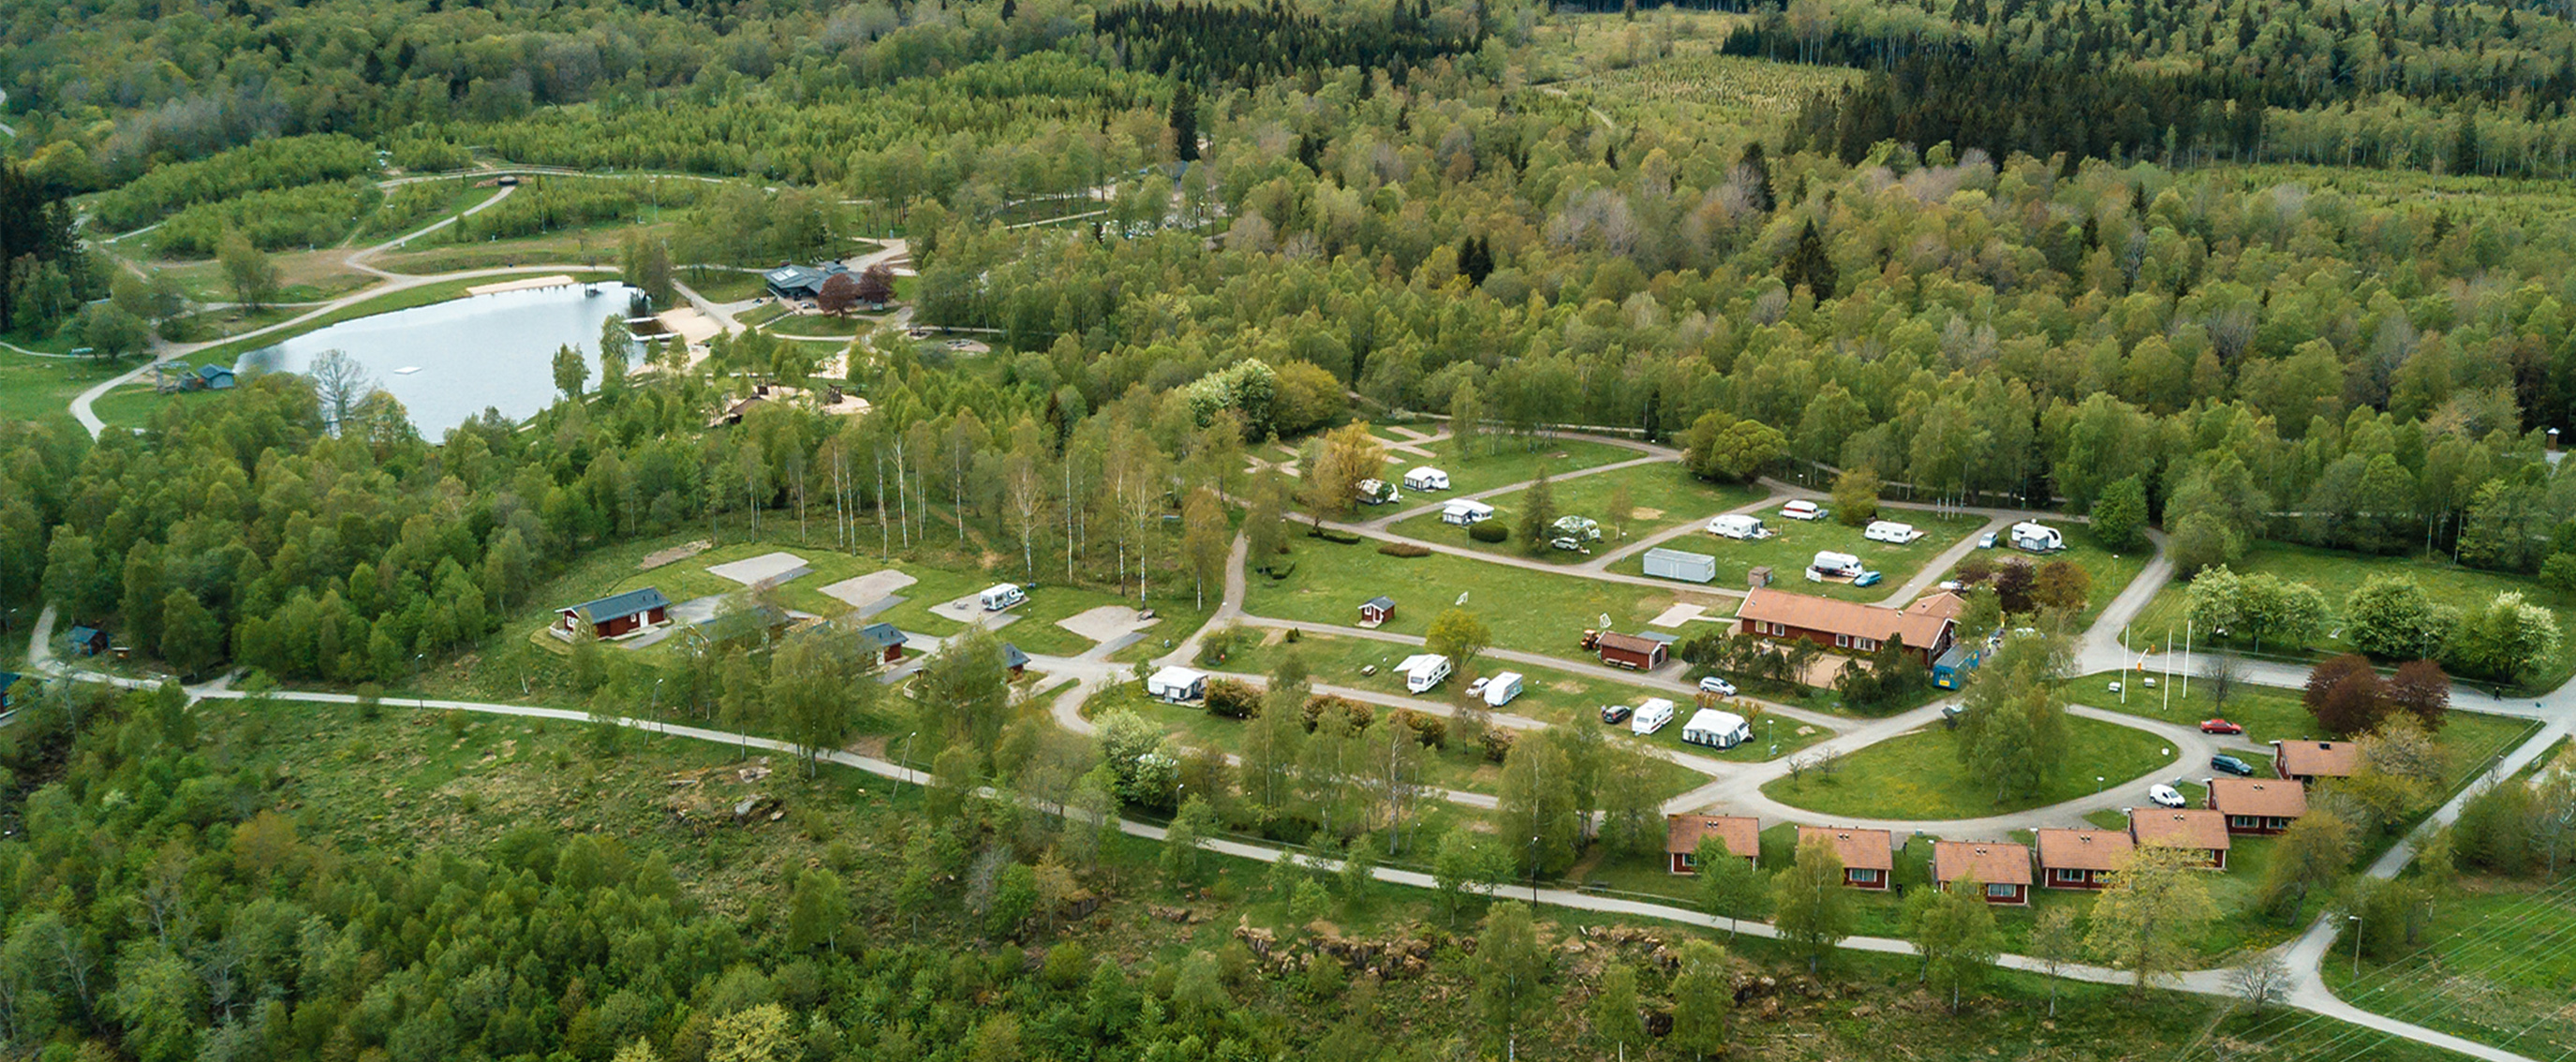 Drone image over the campsite and the cottage village, where you can also see Skogssjön.